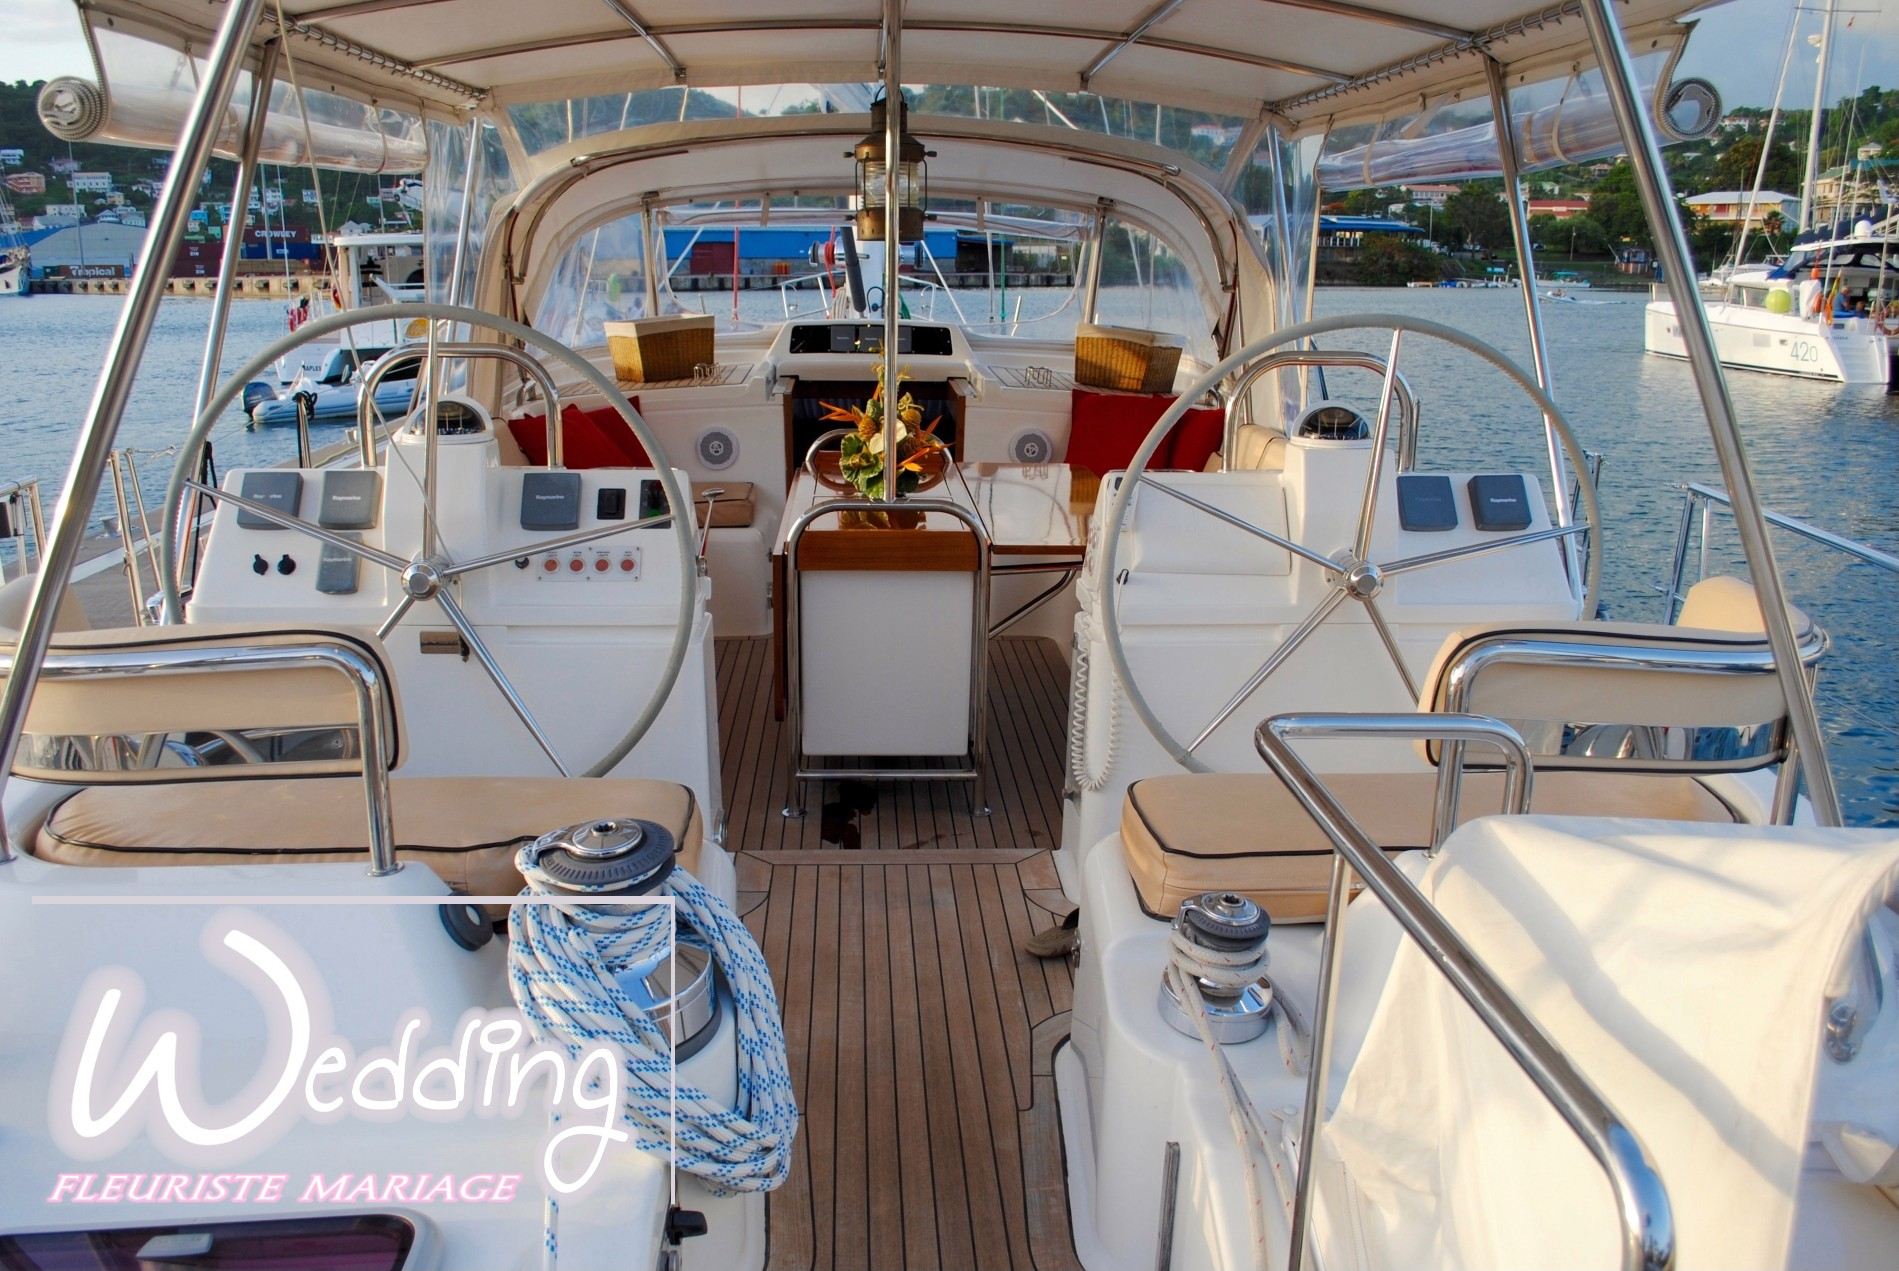 FLEURISTE POUR YACHT - YACHTING